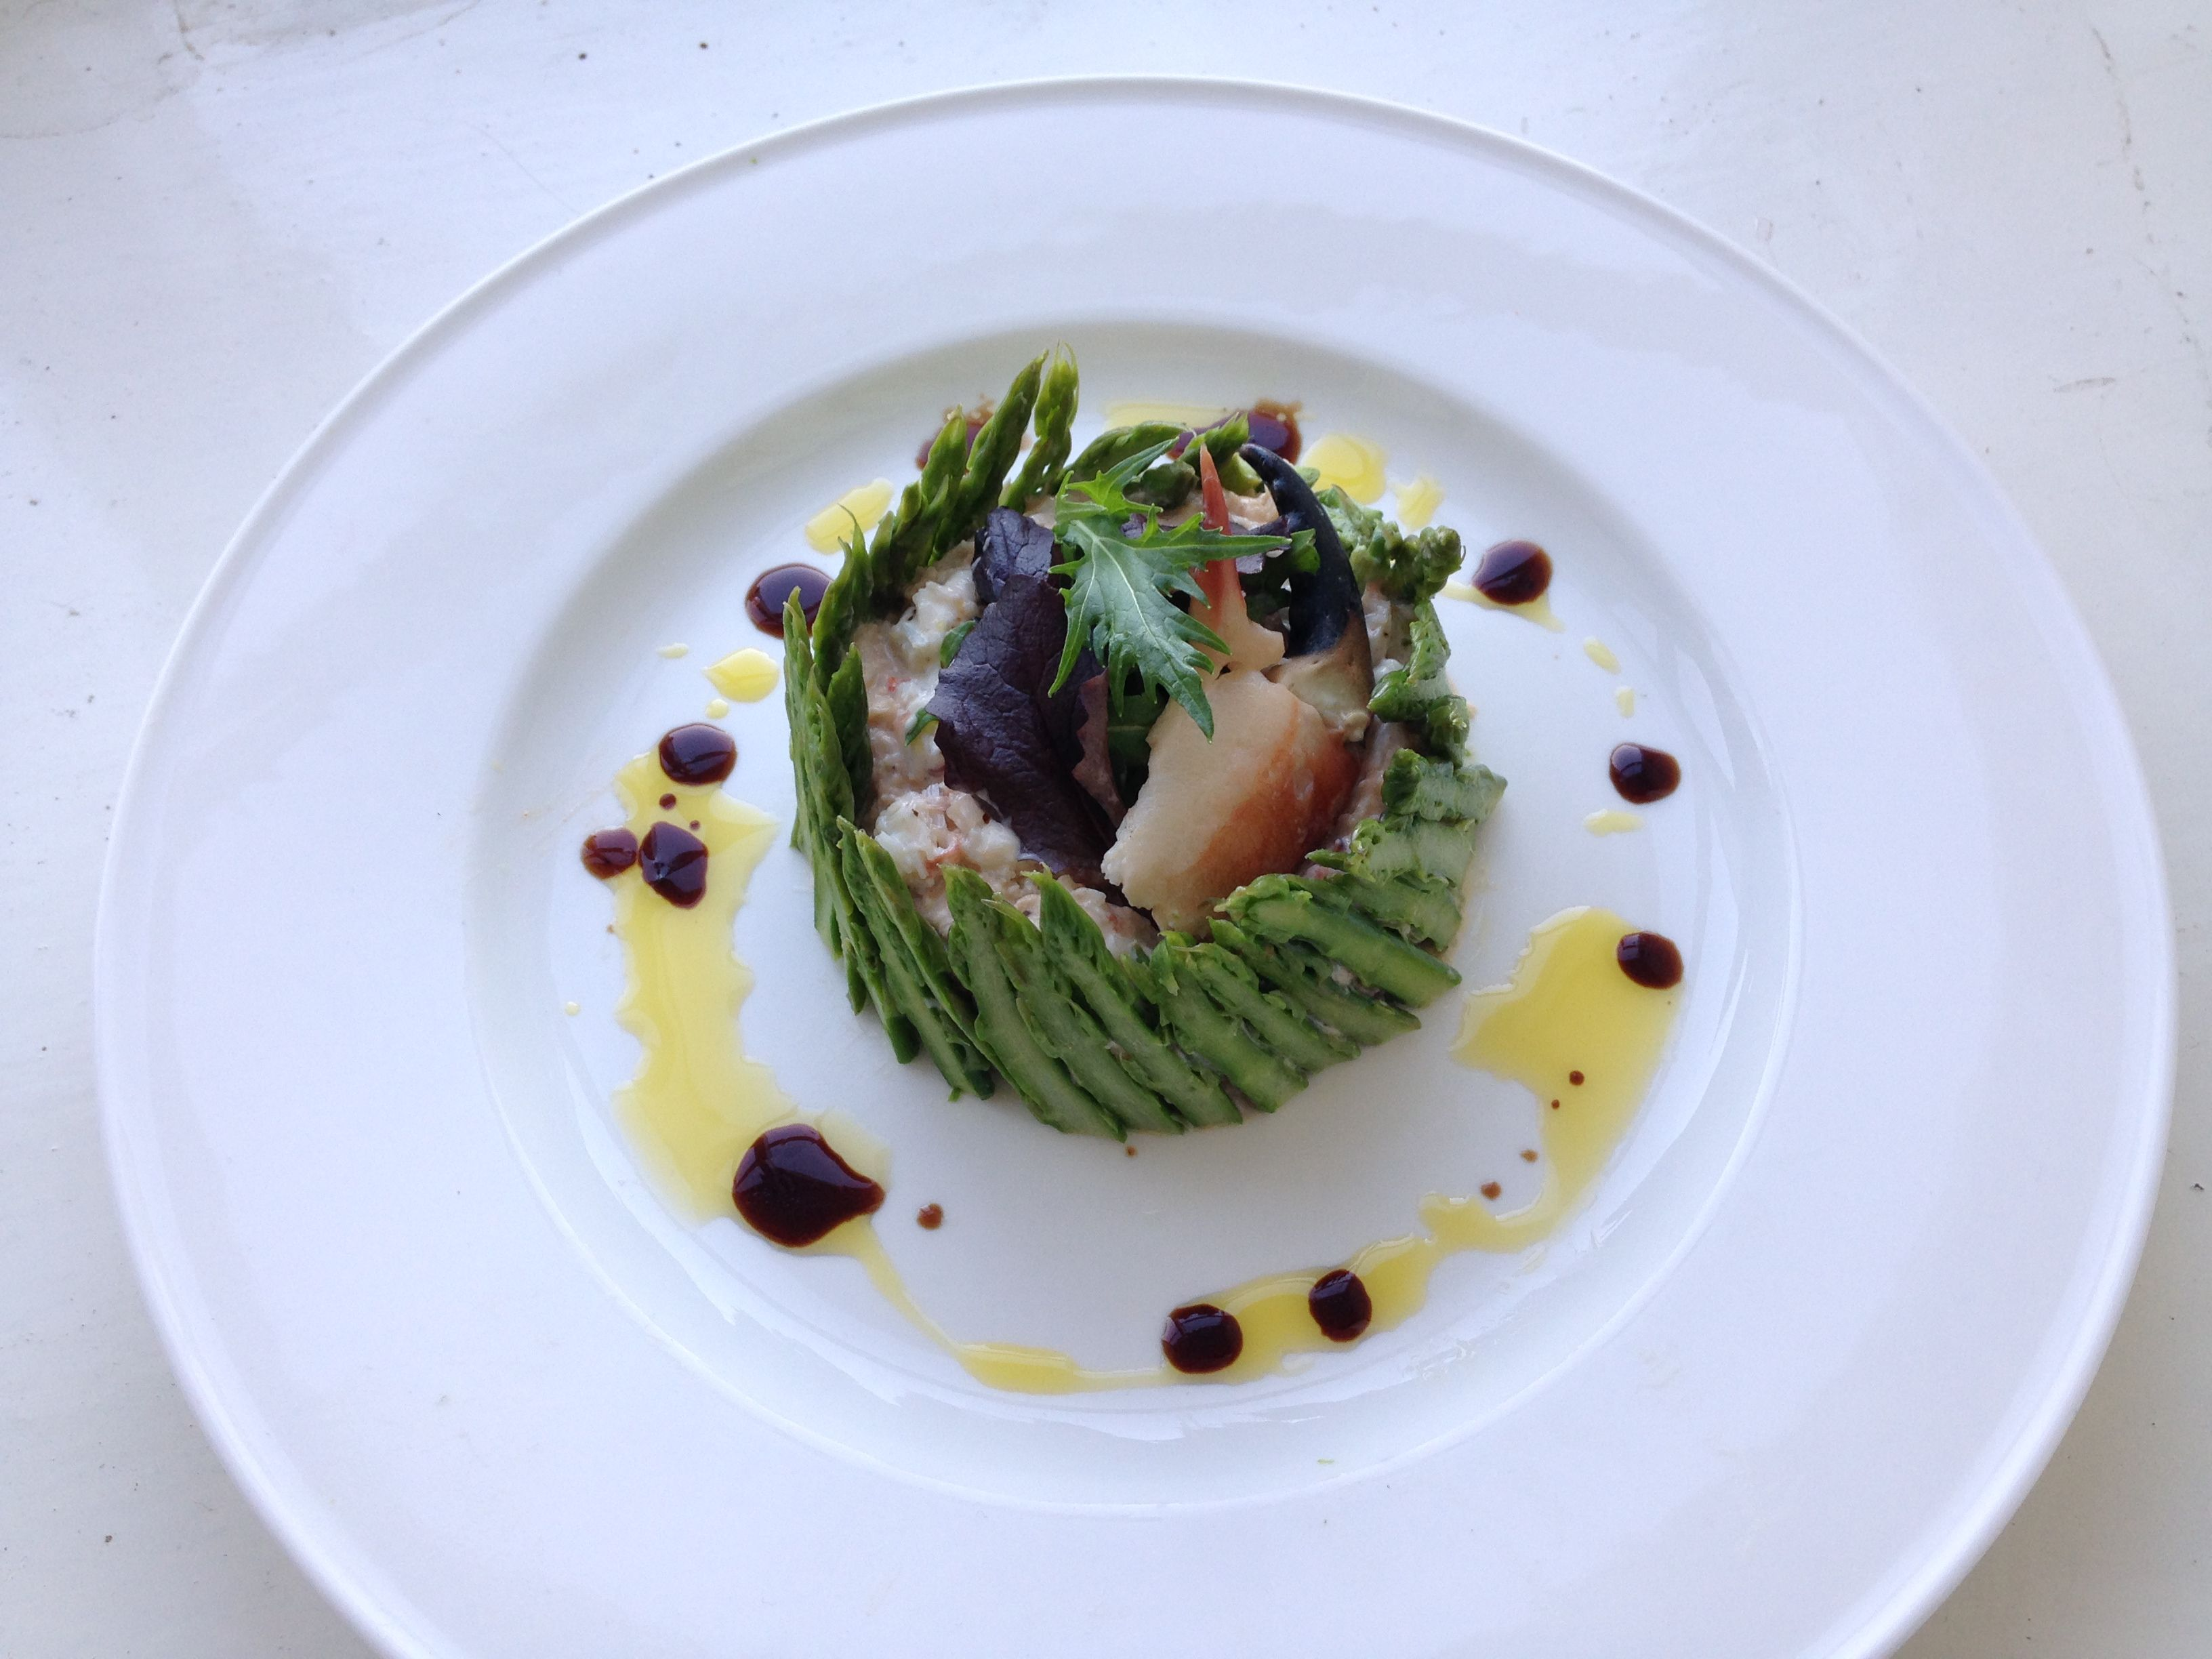 Crab and asparagus stack with fig balsamic vinegar